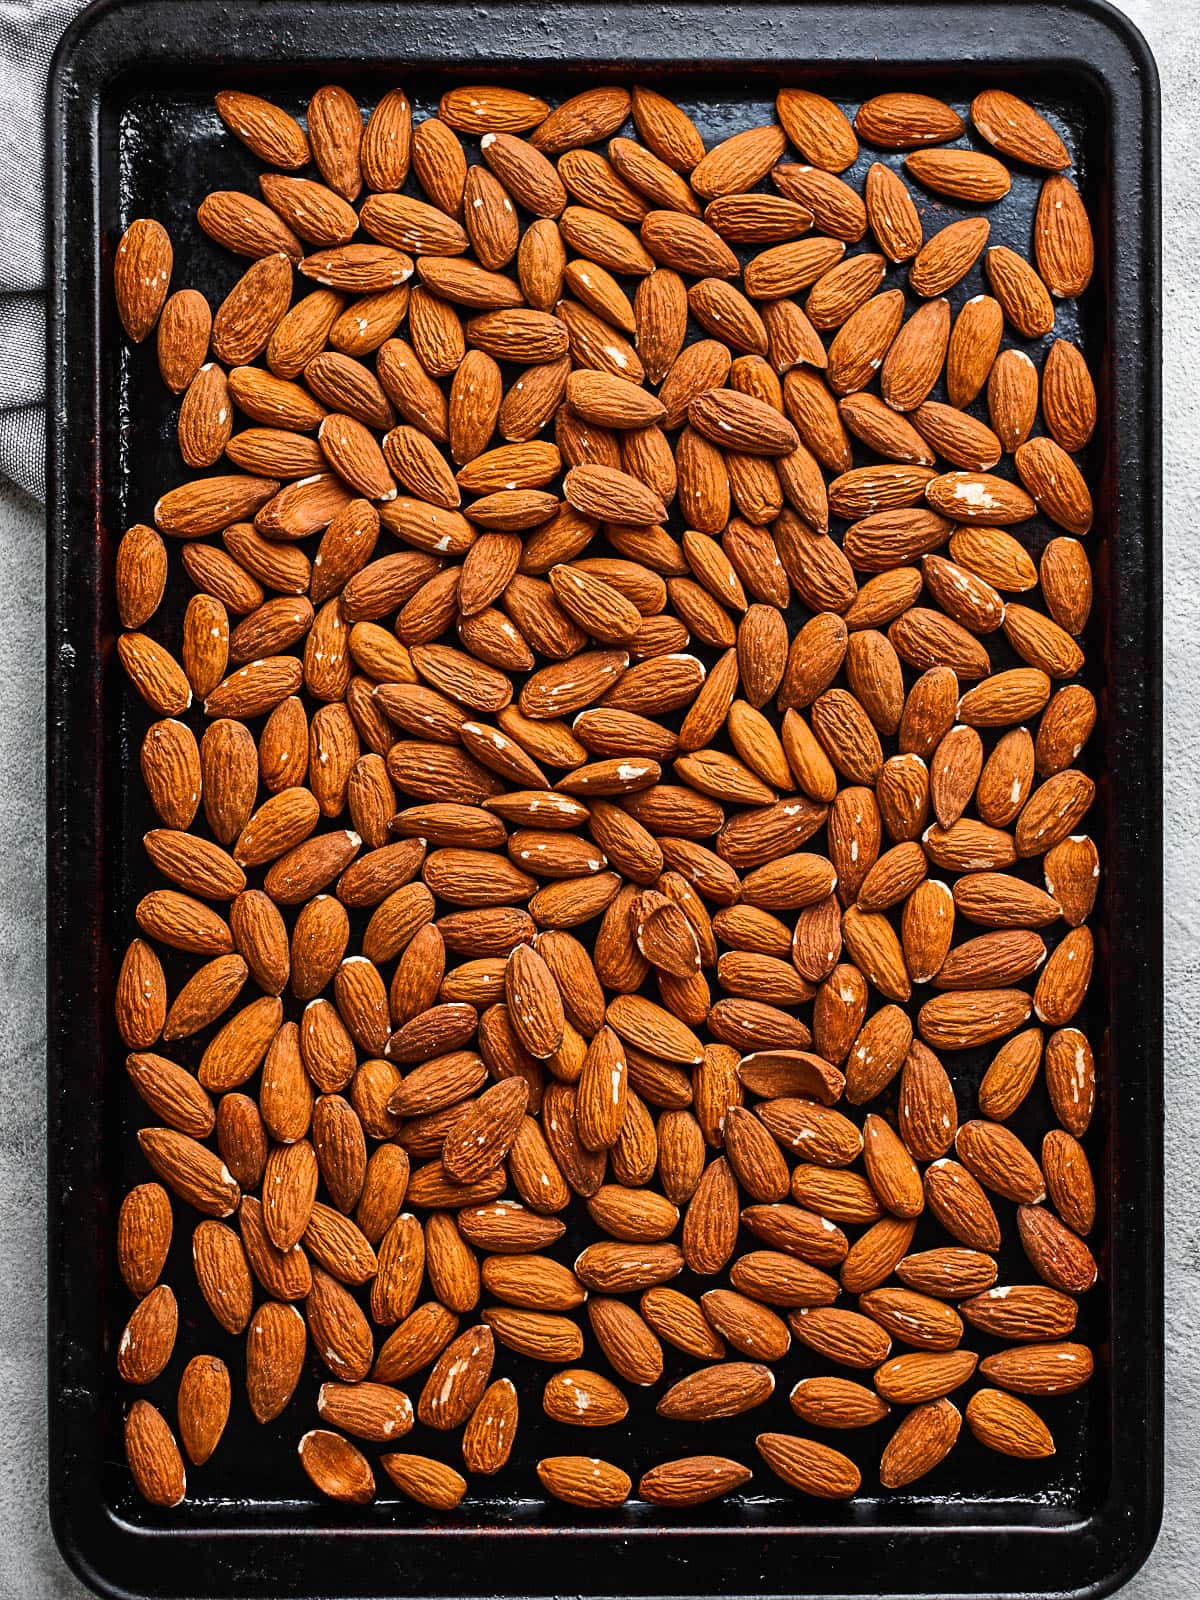 Almonds on a baking sheet before roasting